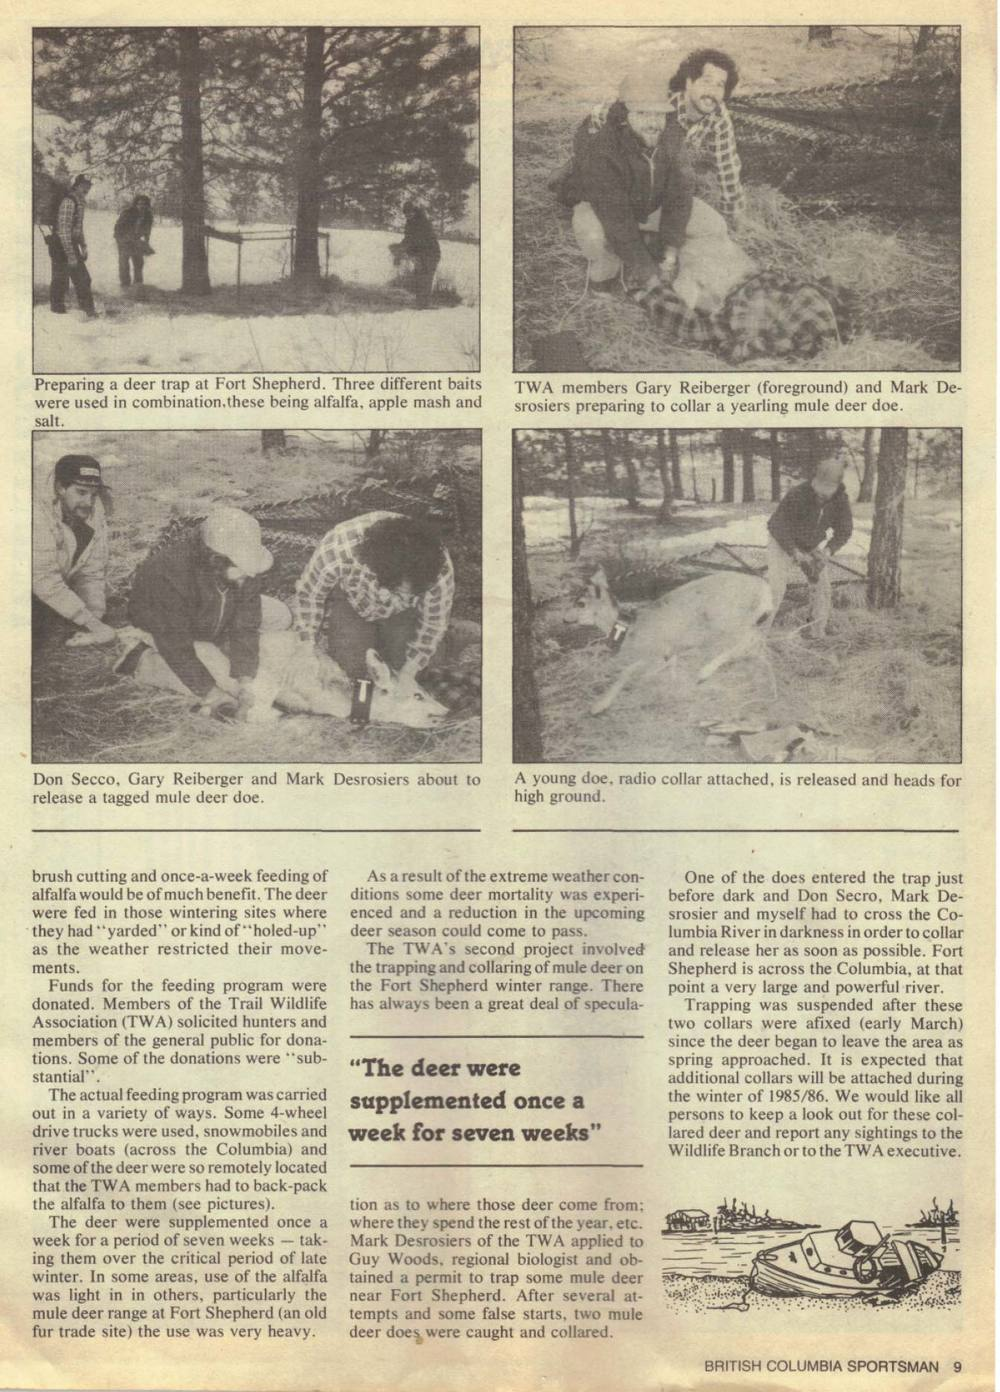 BCWF-Deer-trapping-article-winter-1984-85-bottom.jpg